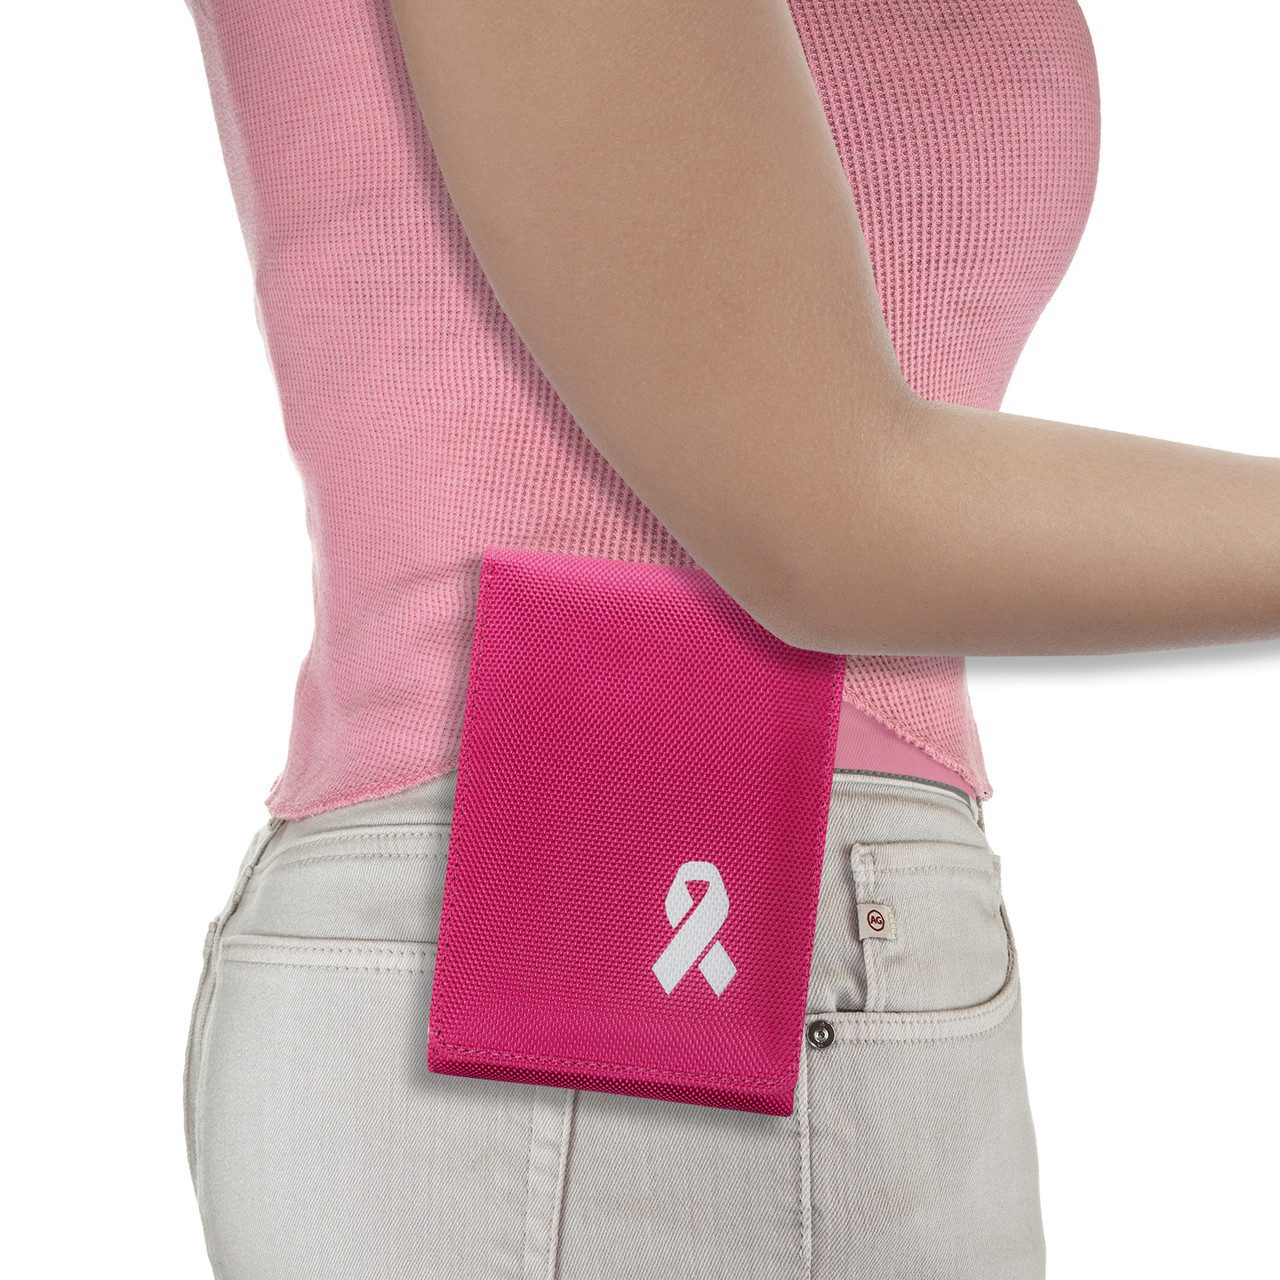 Ruger Security 9 Compact Pink Covert Series Holster